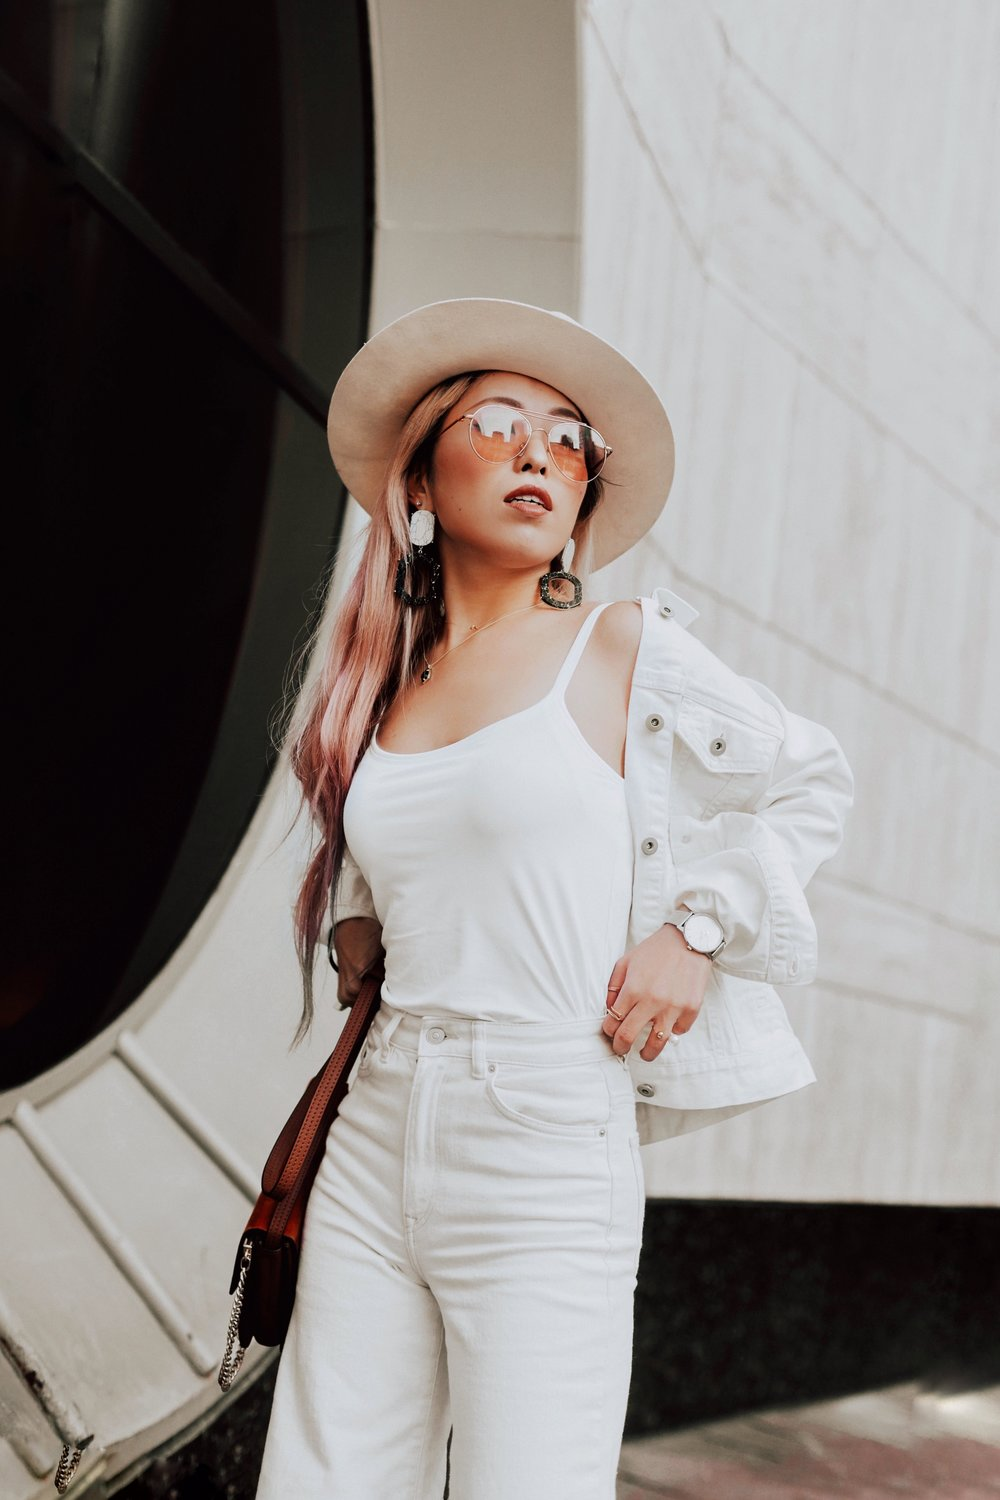 Uniqlo AIRism Bratop_Uniqlo White Denim Jacket_H&M White Cropped flare jeans-Lack Of color Ivory Bone Fedora_ASOS Marble Drop Earrings_Chloe Blown Small Faye Leather Shoulder Bag-Zero UV Sunglasses-Nude Lace Up Heels-Aikas Love Closet-Seattle Fashion Blogger-Japanese-pink hair-petite 10